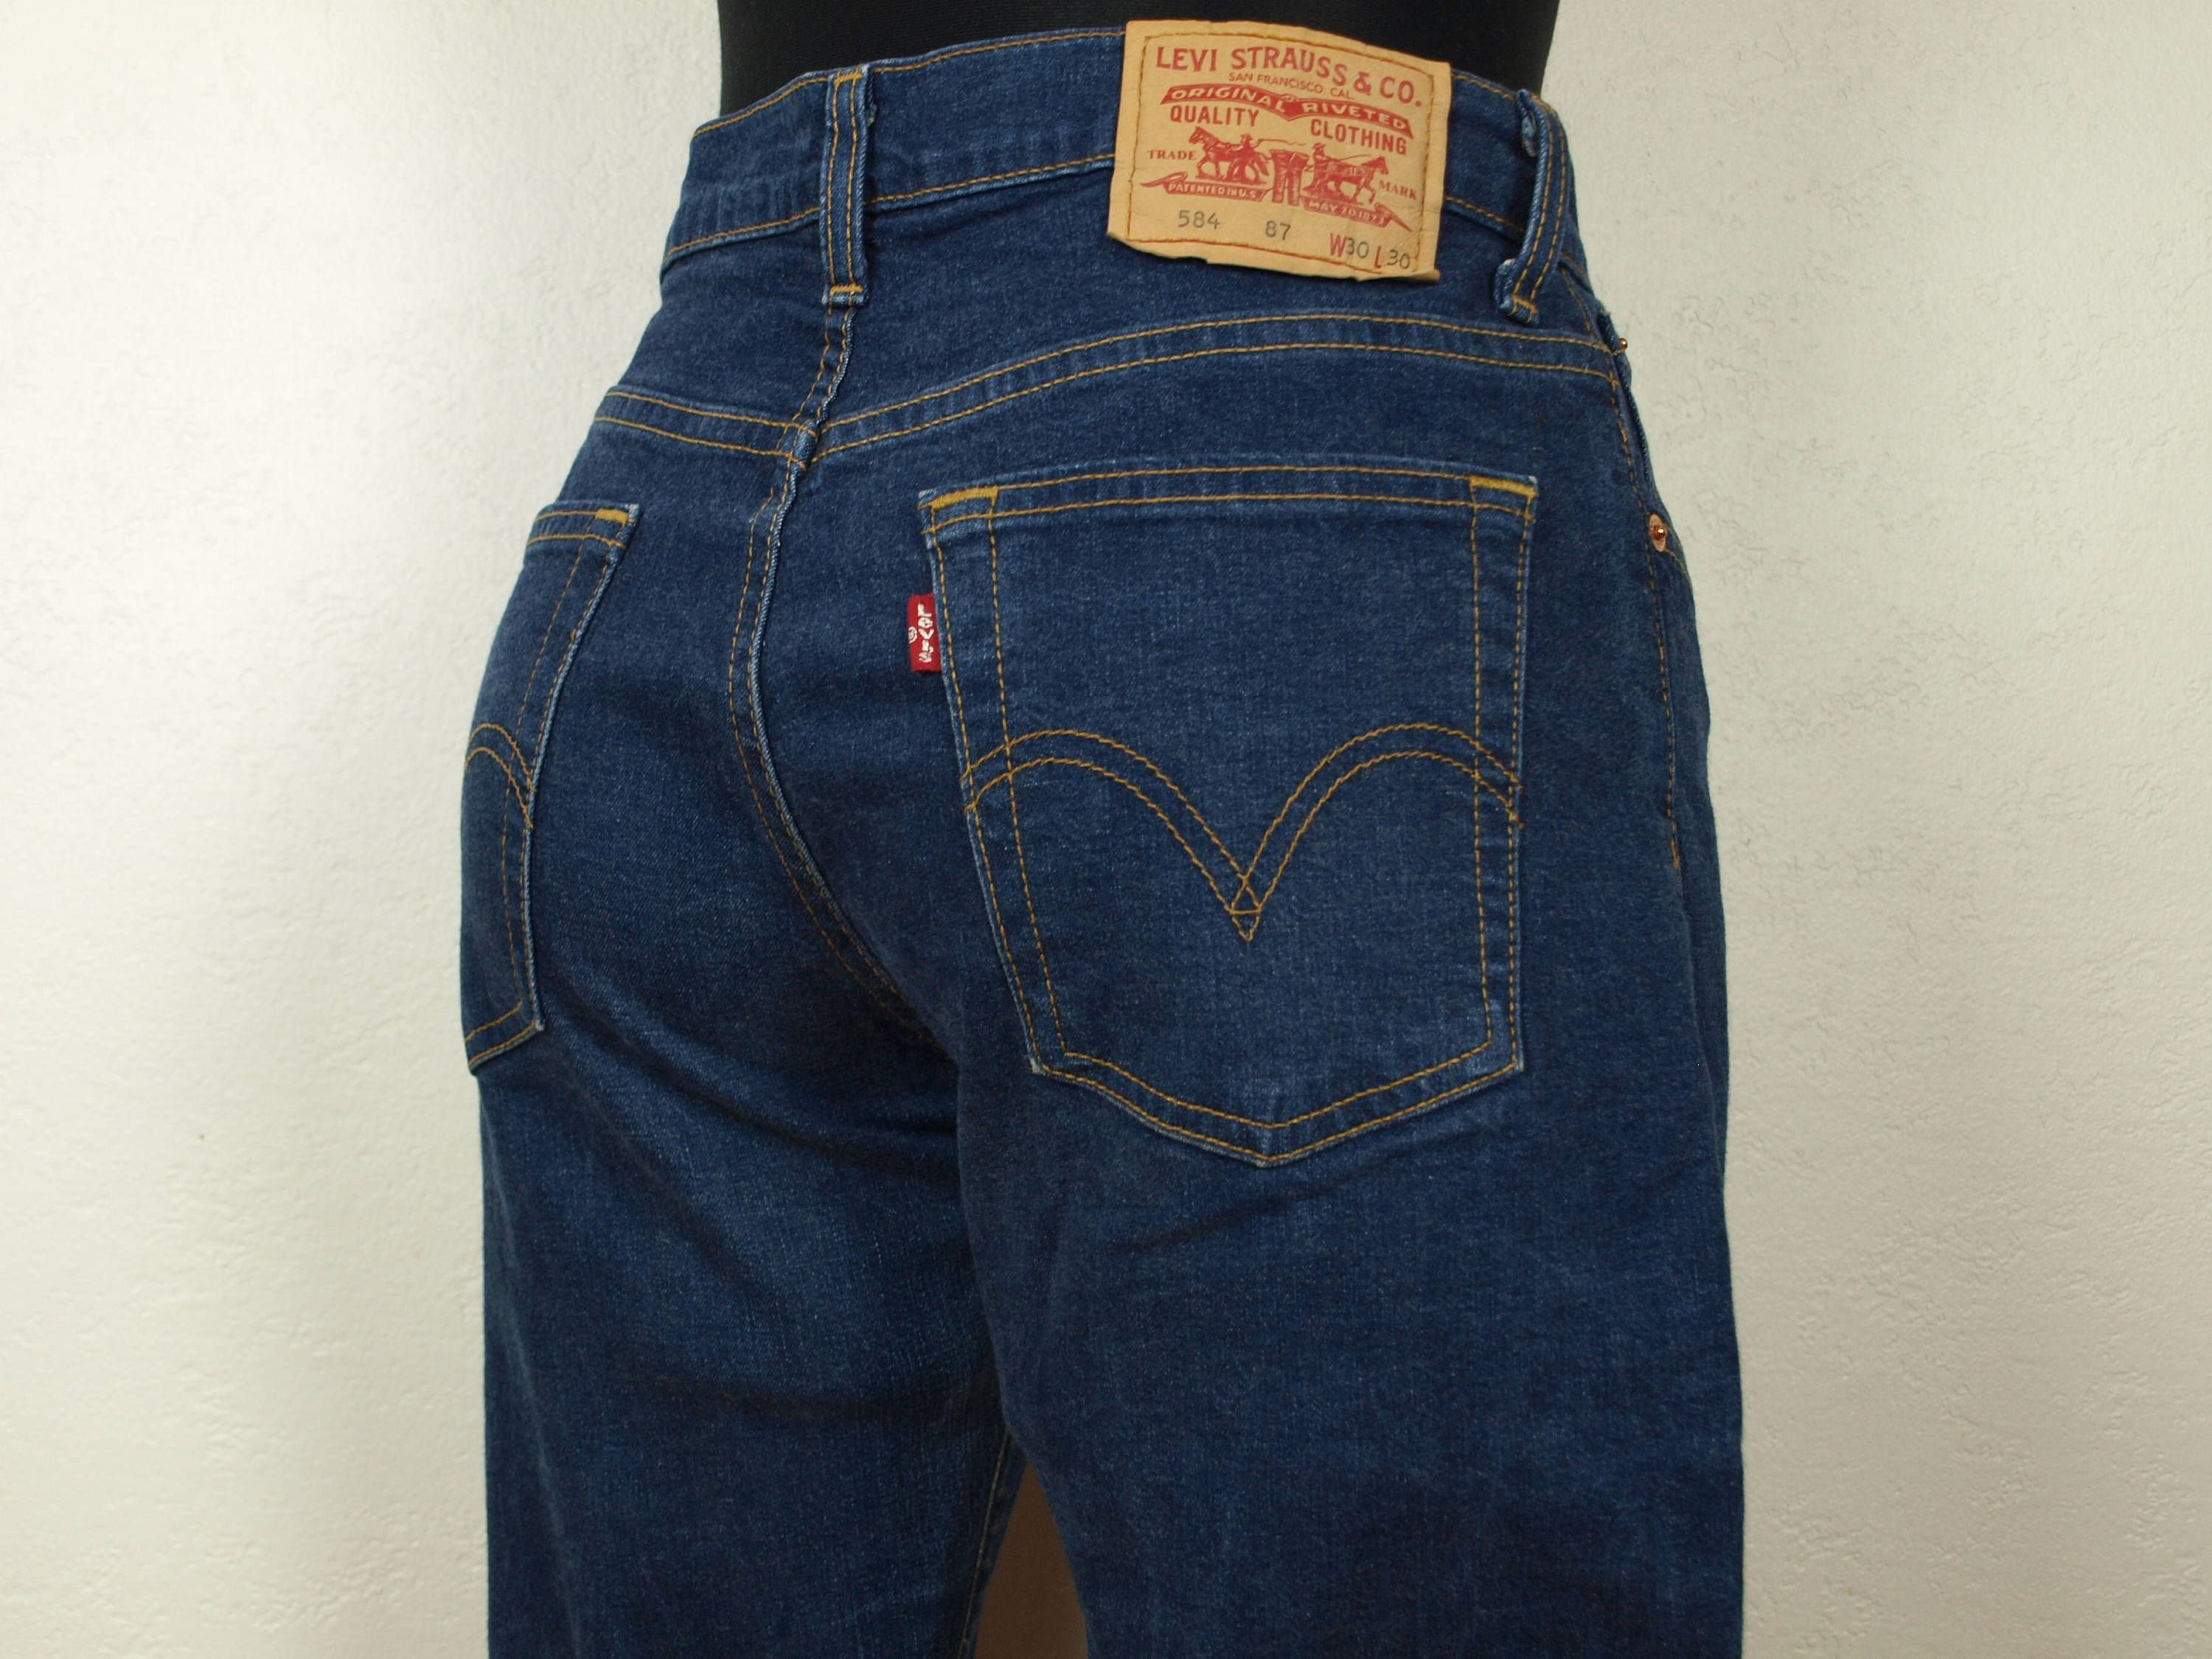 86892099ad Vintage Levis 584 Blue Levis Strauss 584 jeans Size W30 L30 (29) Boot Cut  100% Cotton Made in Turkey wide leg opening Levis jeans Blue Levis by ...